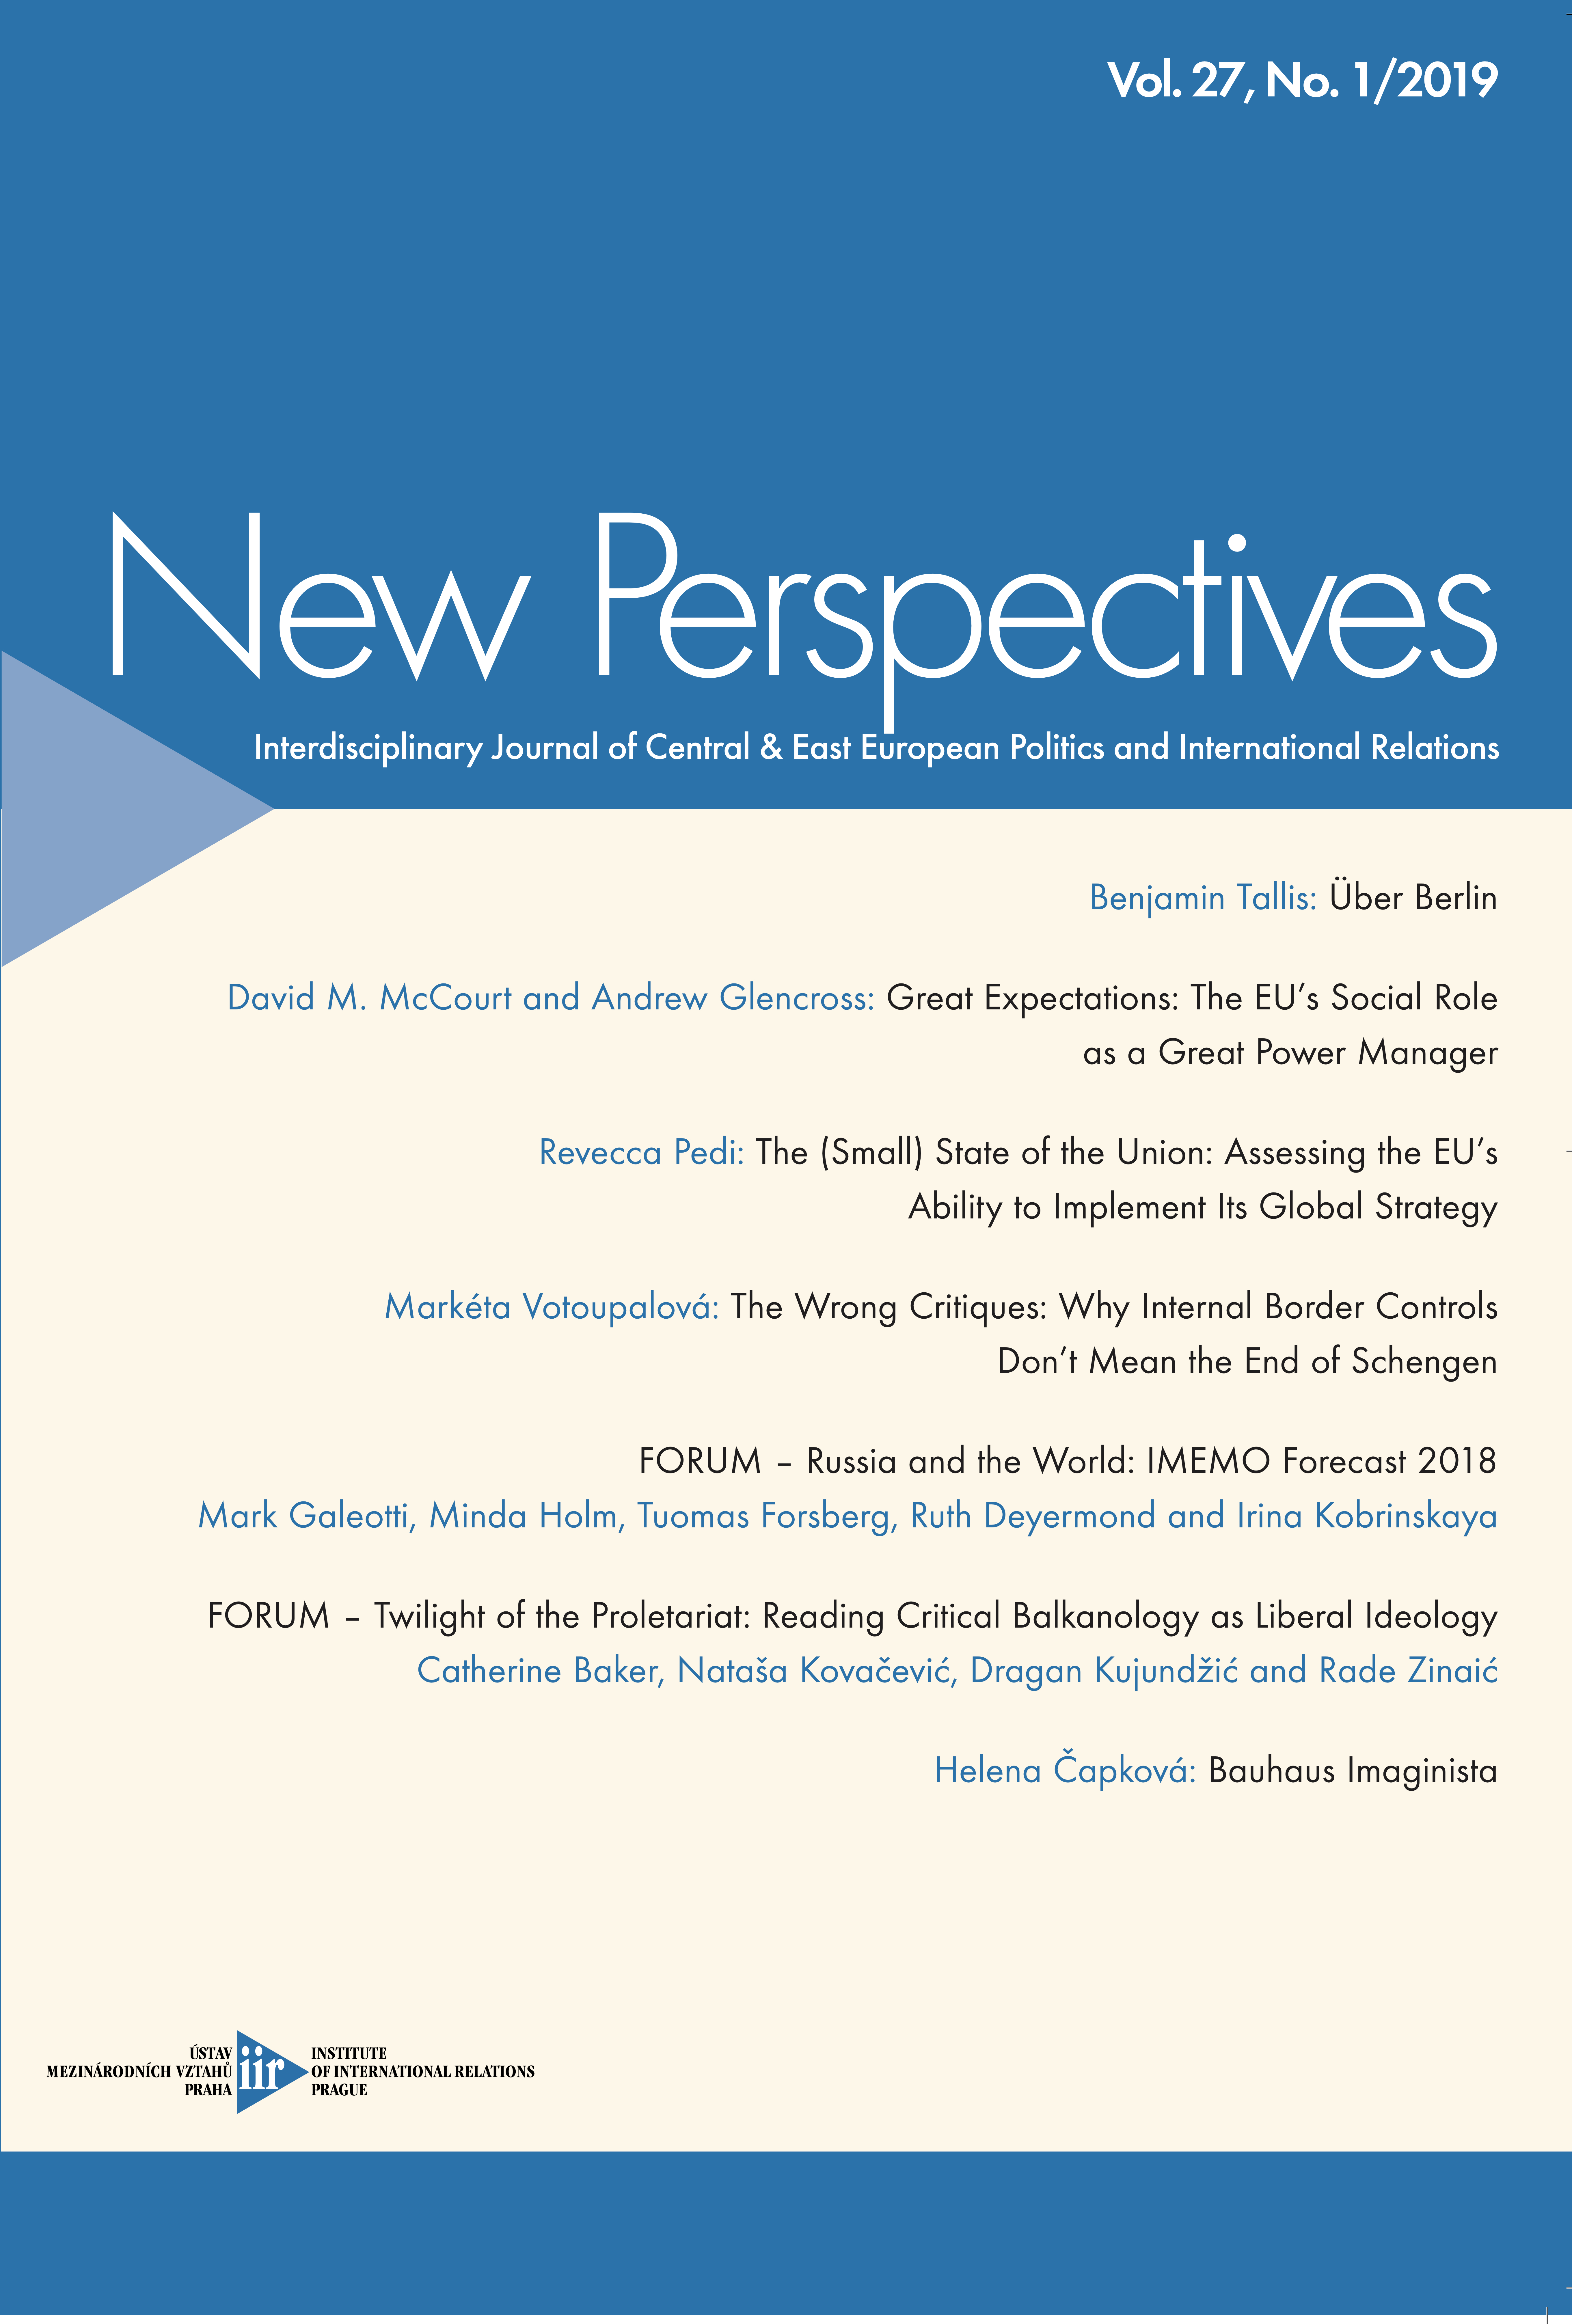 New Perspectives Issue 01/2019